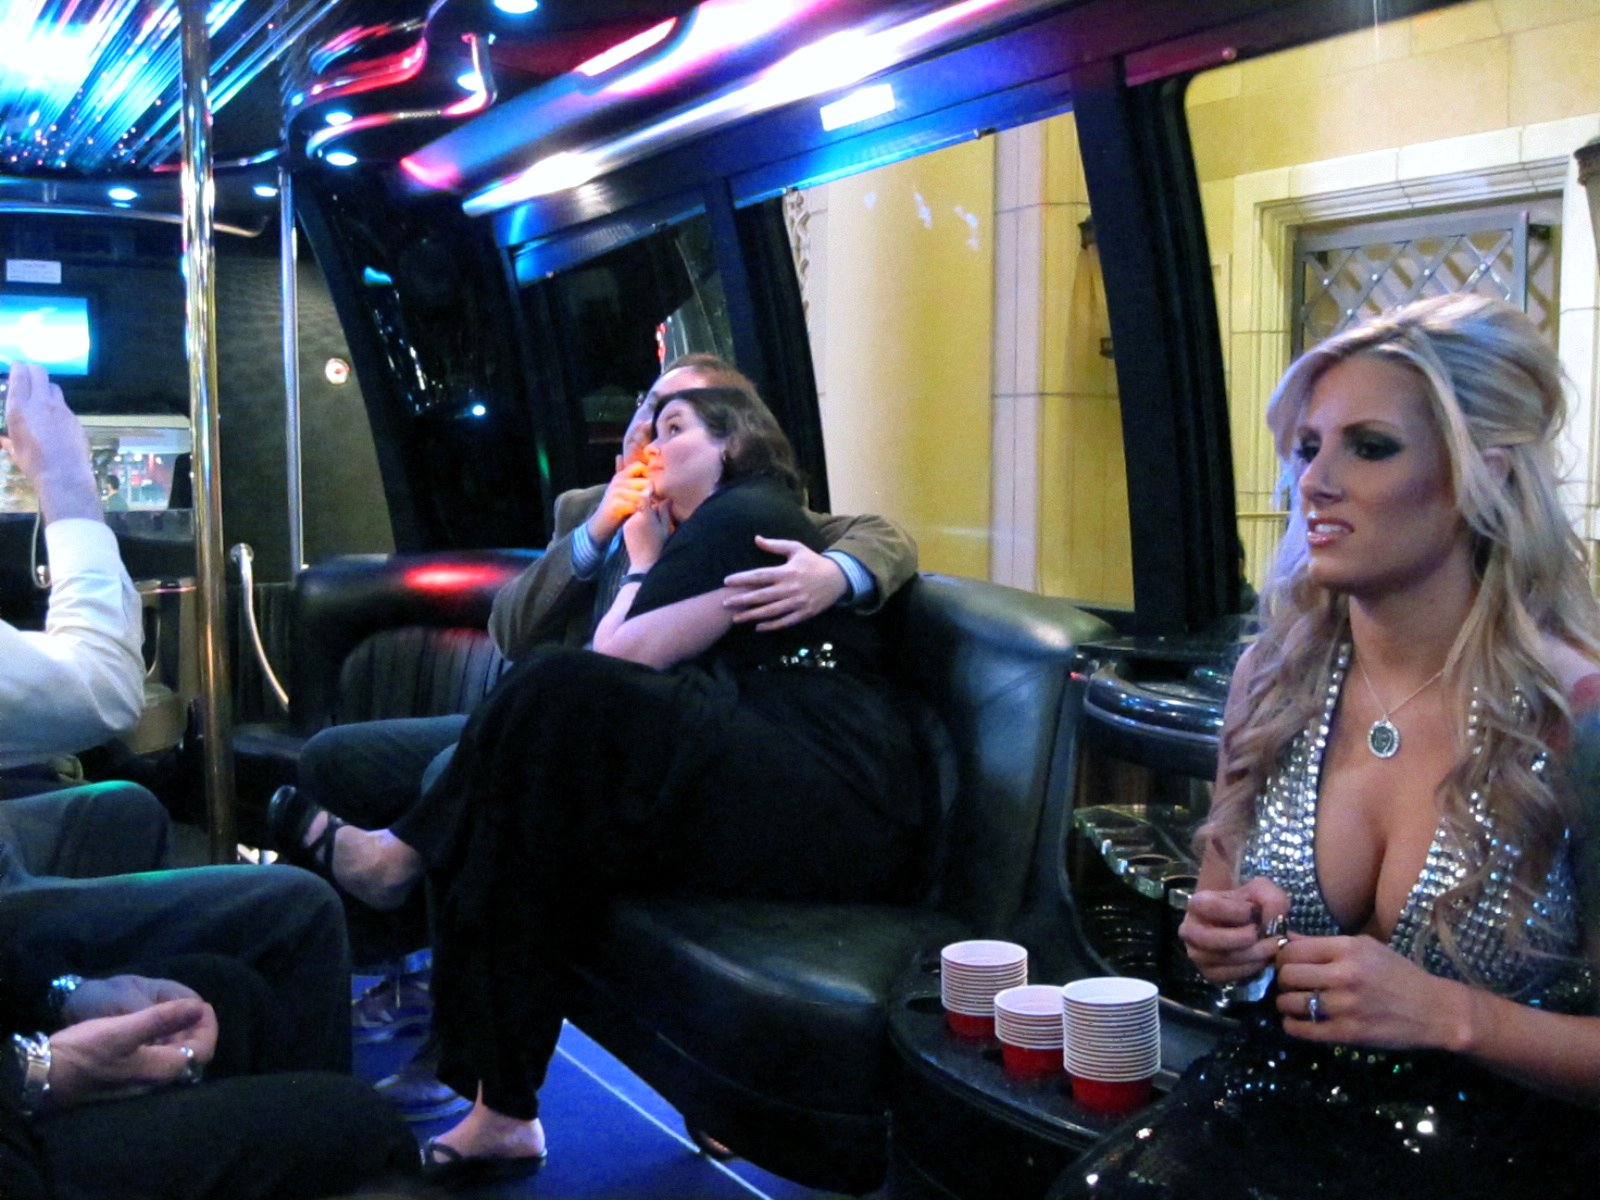 File Teagan Presley on the 2010 AVN Party Bus jpg. File Teagan Presley on the 2010 AVN Party Bus jpg   Wikimedia Commons